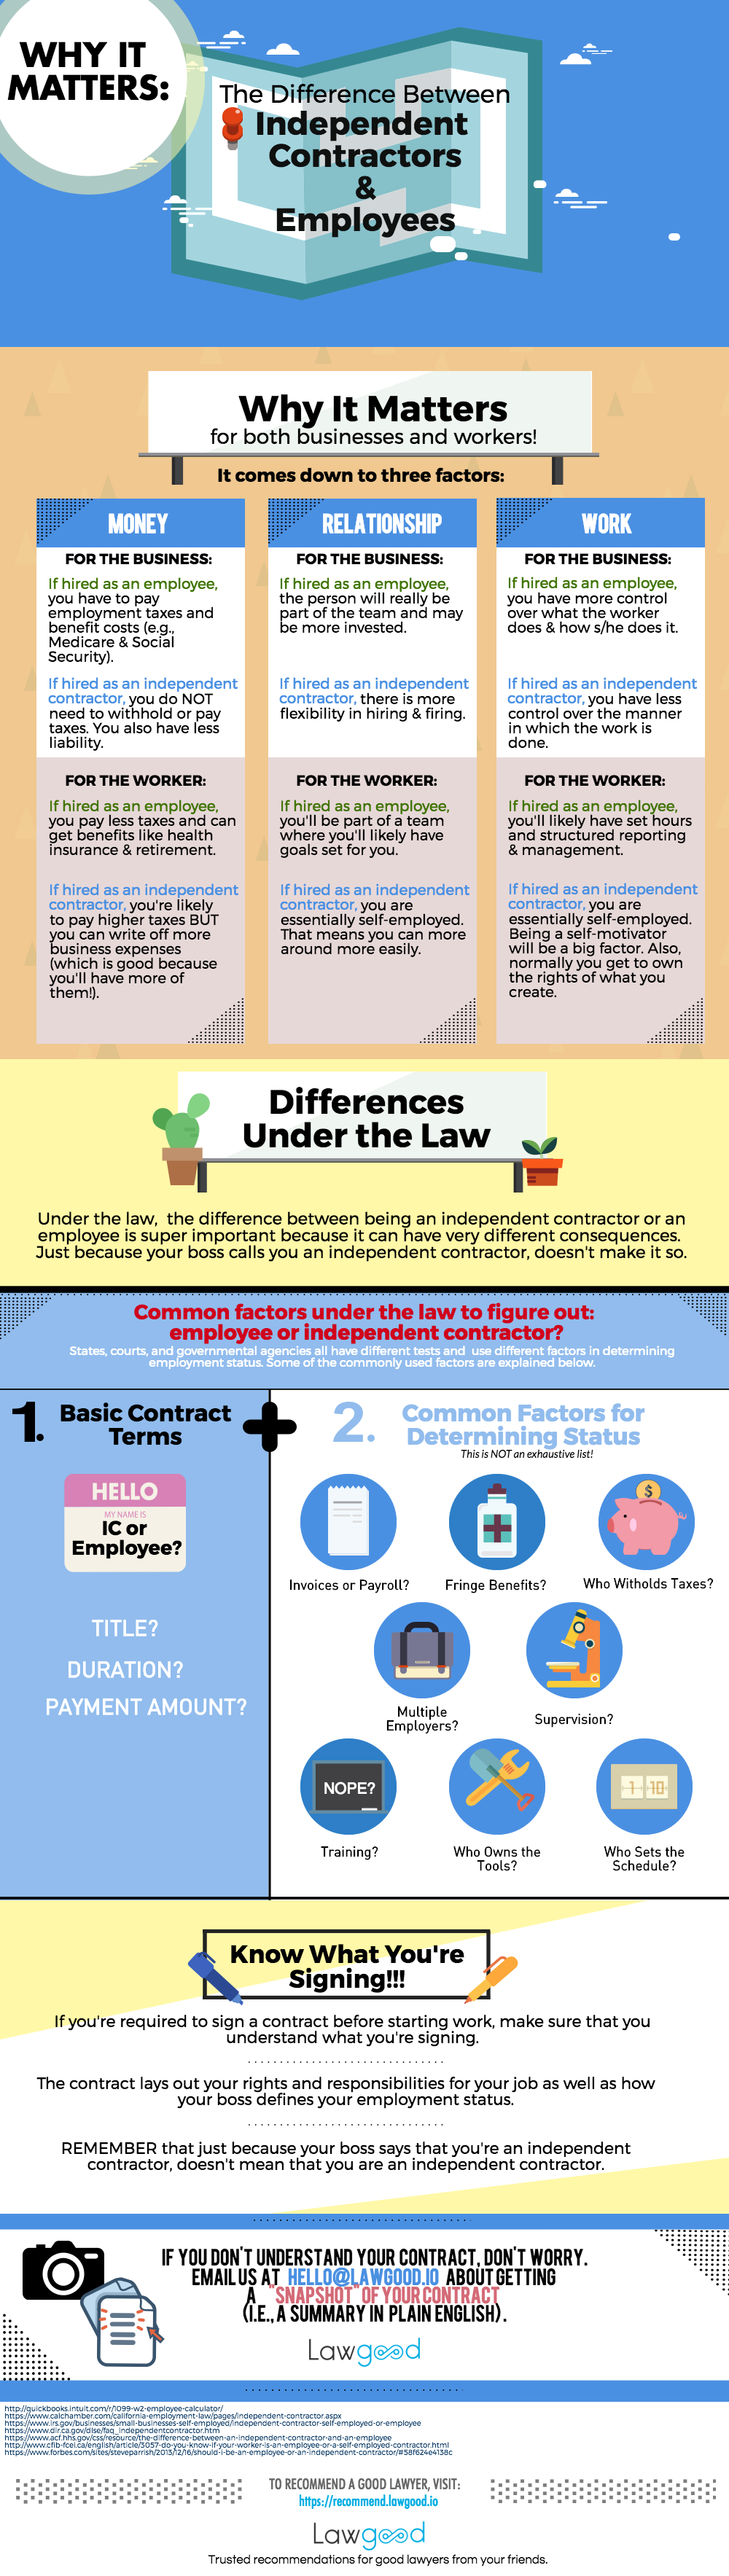 Know the issues and differences between independent contractors and employees.